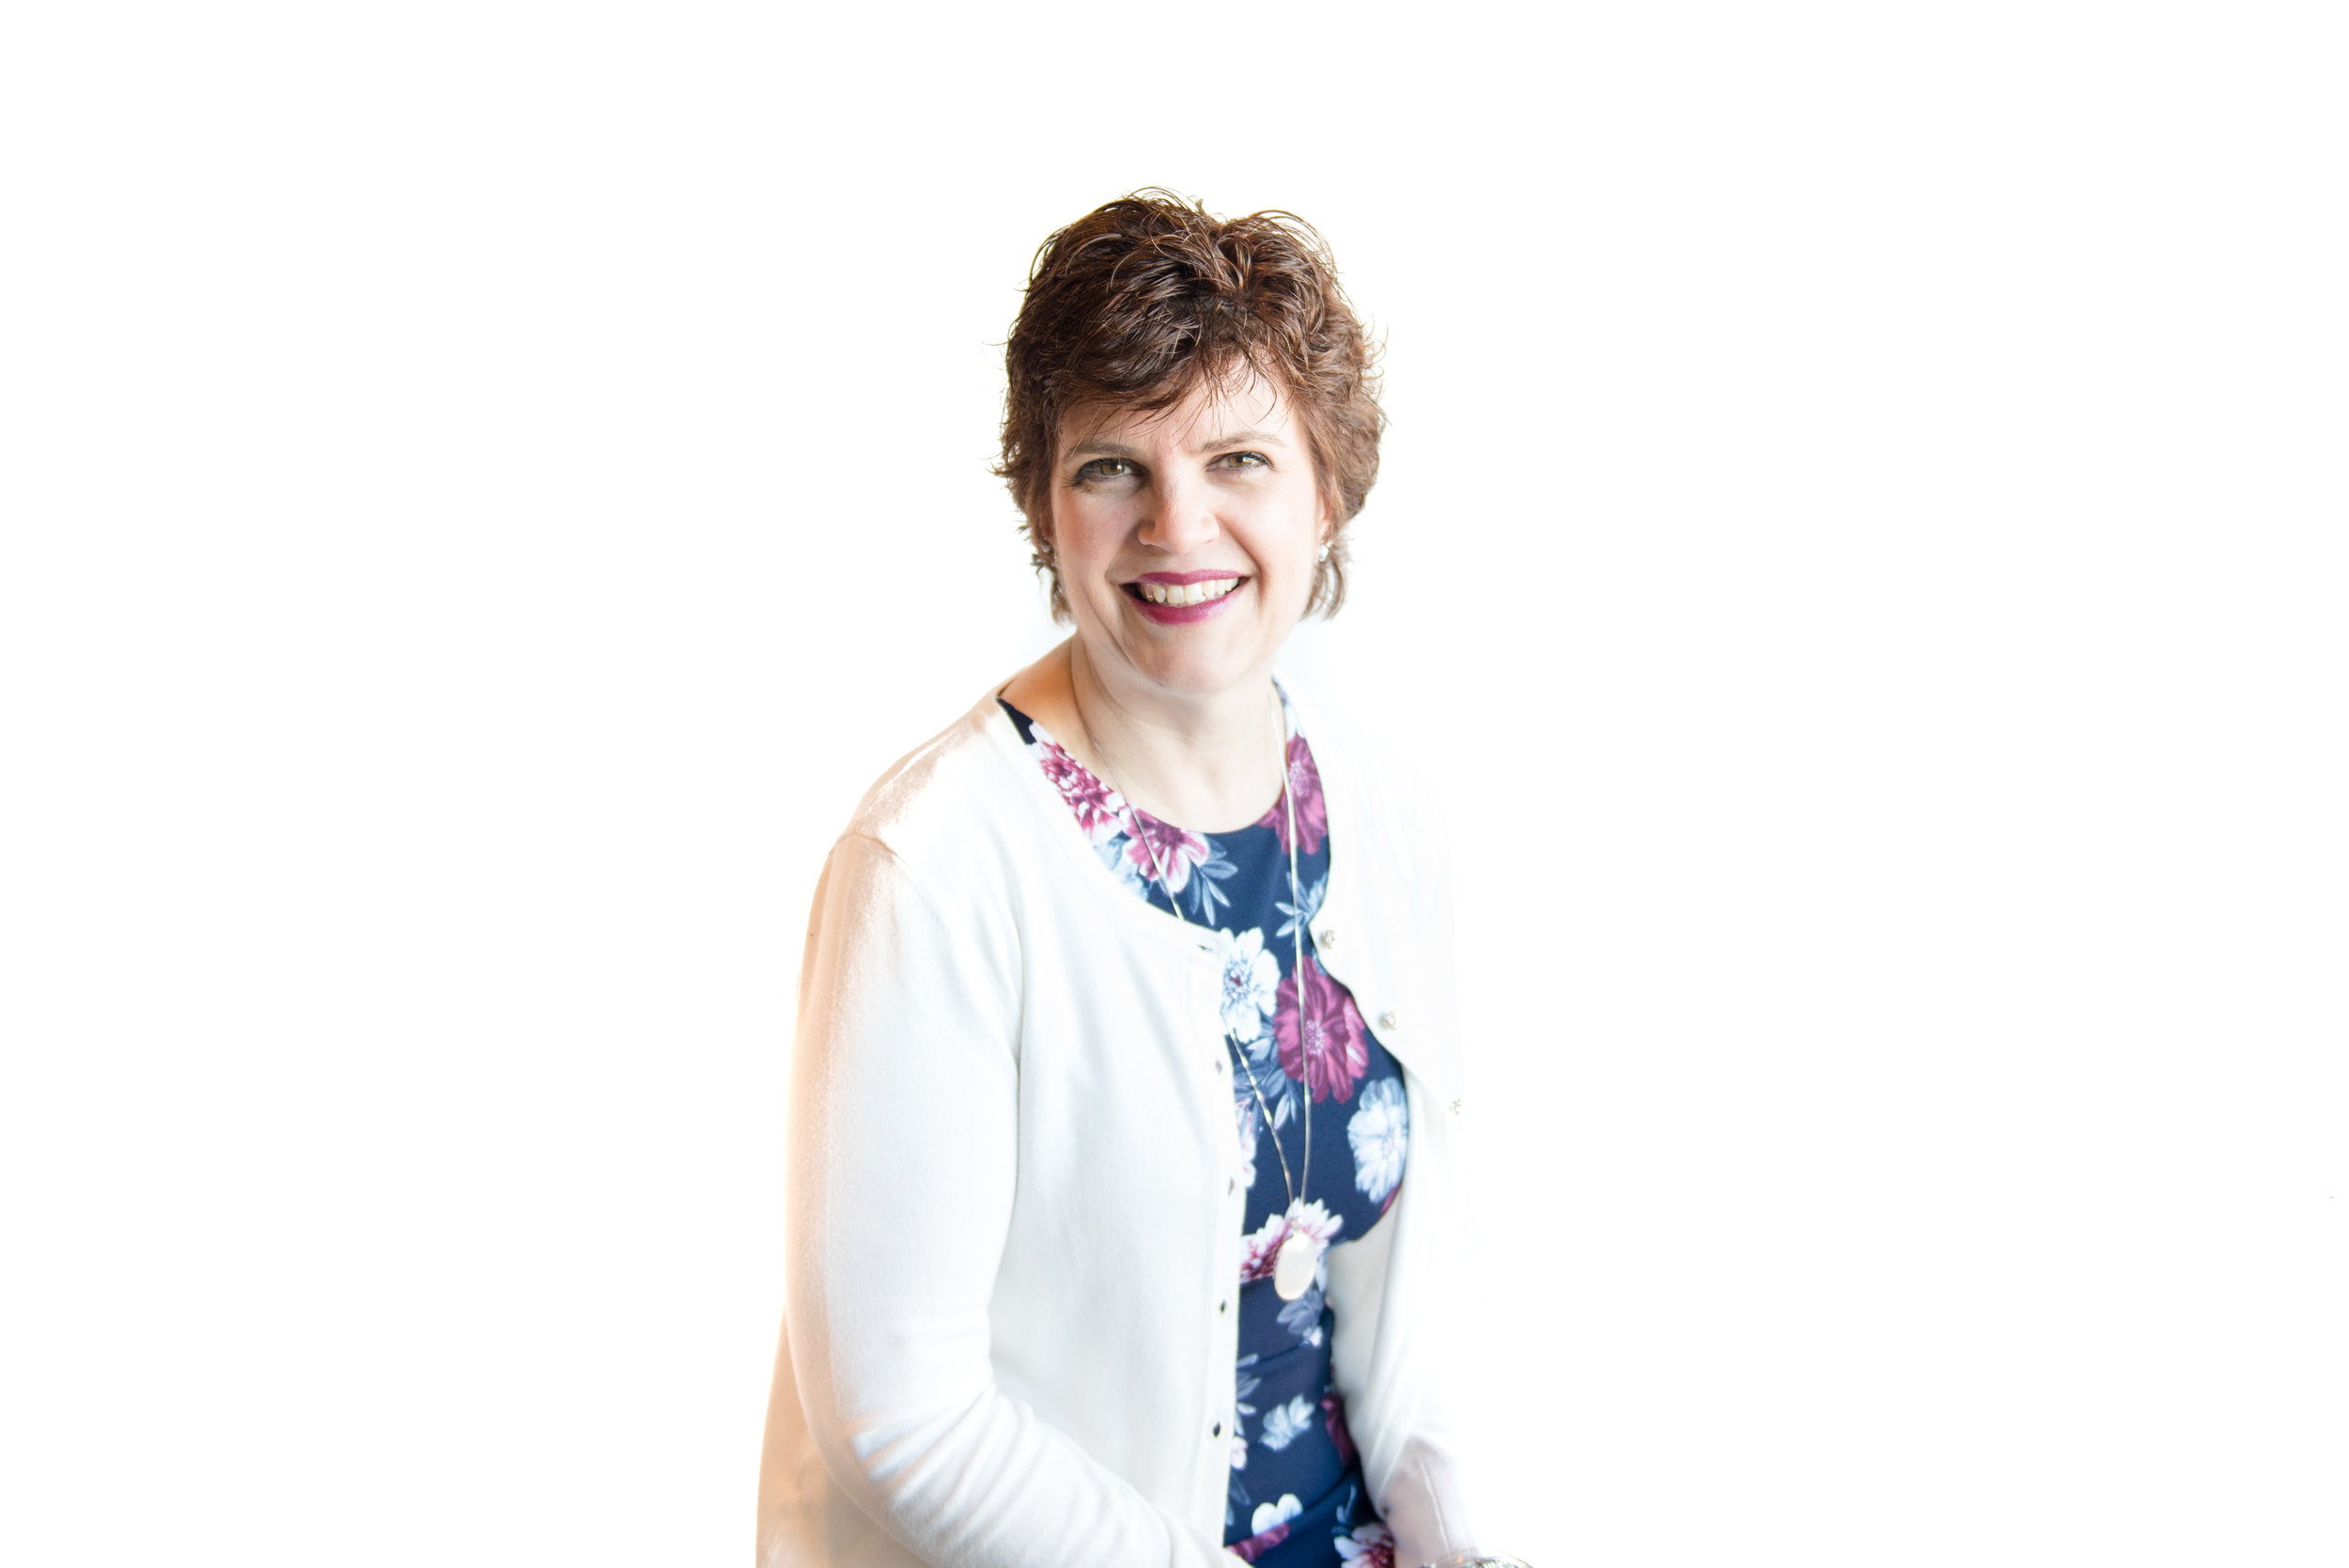 Questions about Grace Missions? Contact Londa Berghaus, Chairperson of the Missions Board. - Click the button below to email Londa.